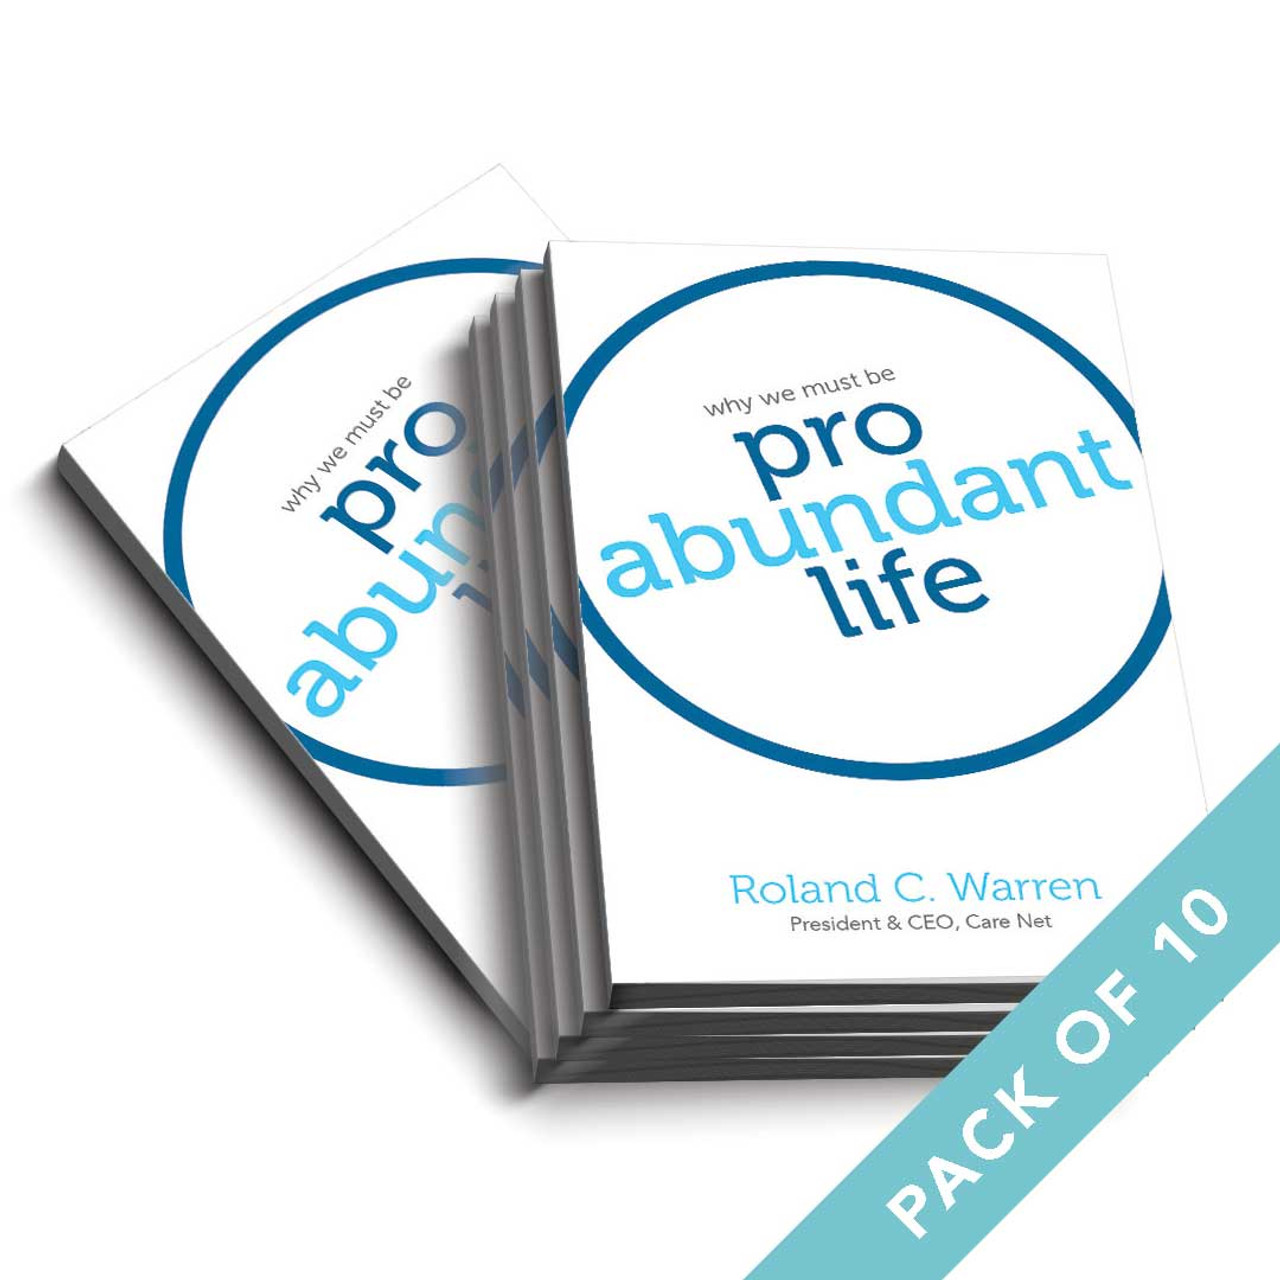 Why We Must Be Pro Abundant Life Book